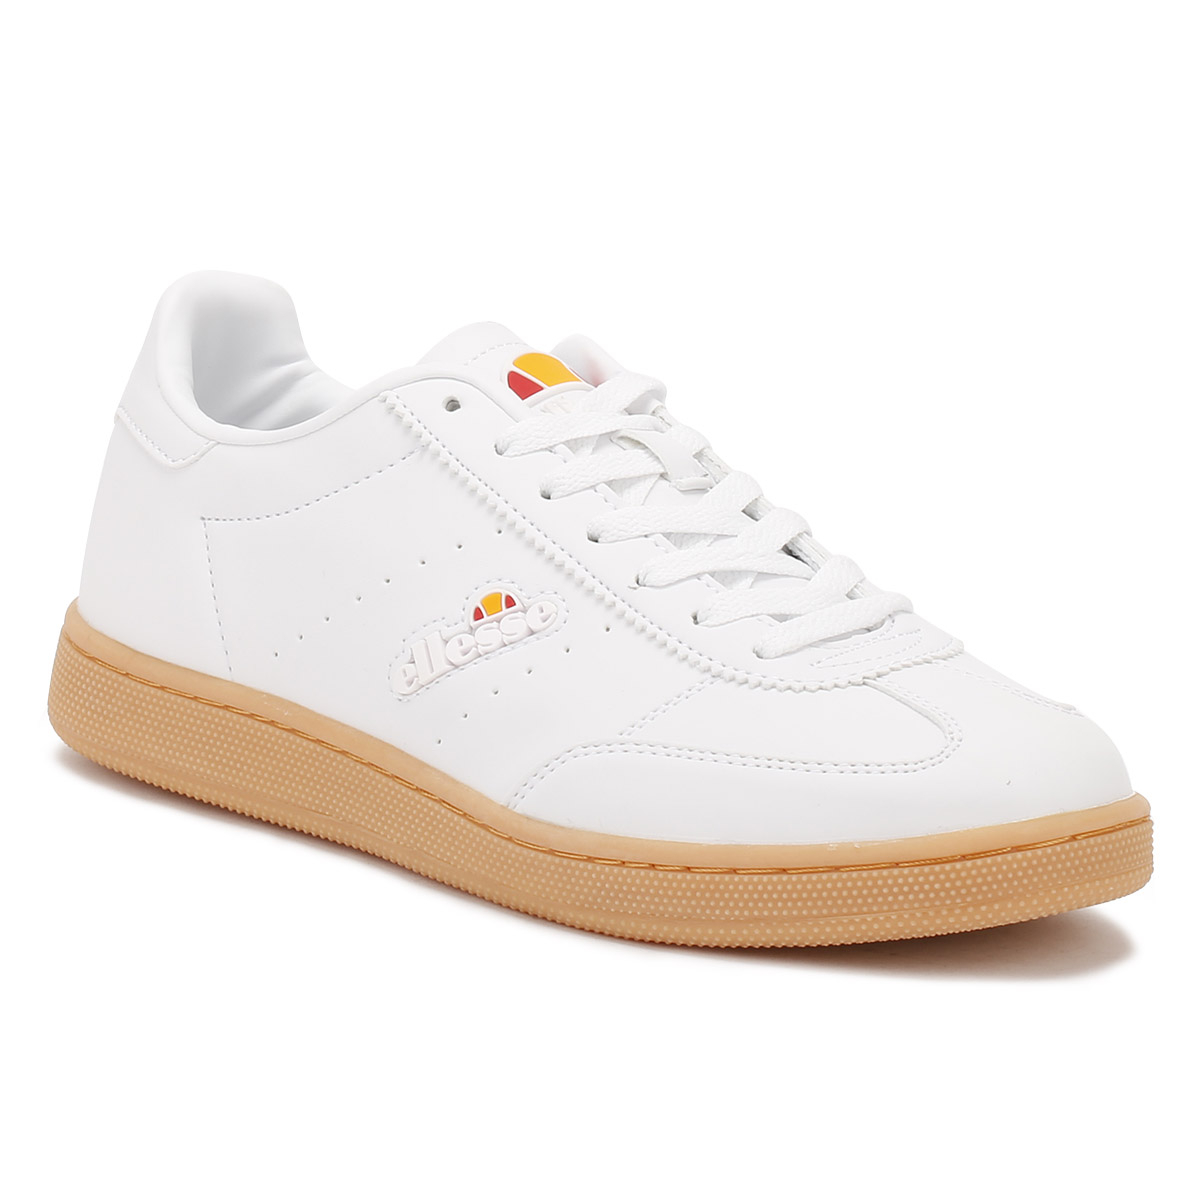 Gum Sole Shoes Online